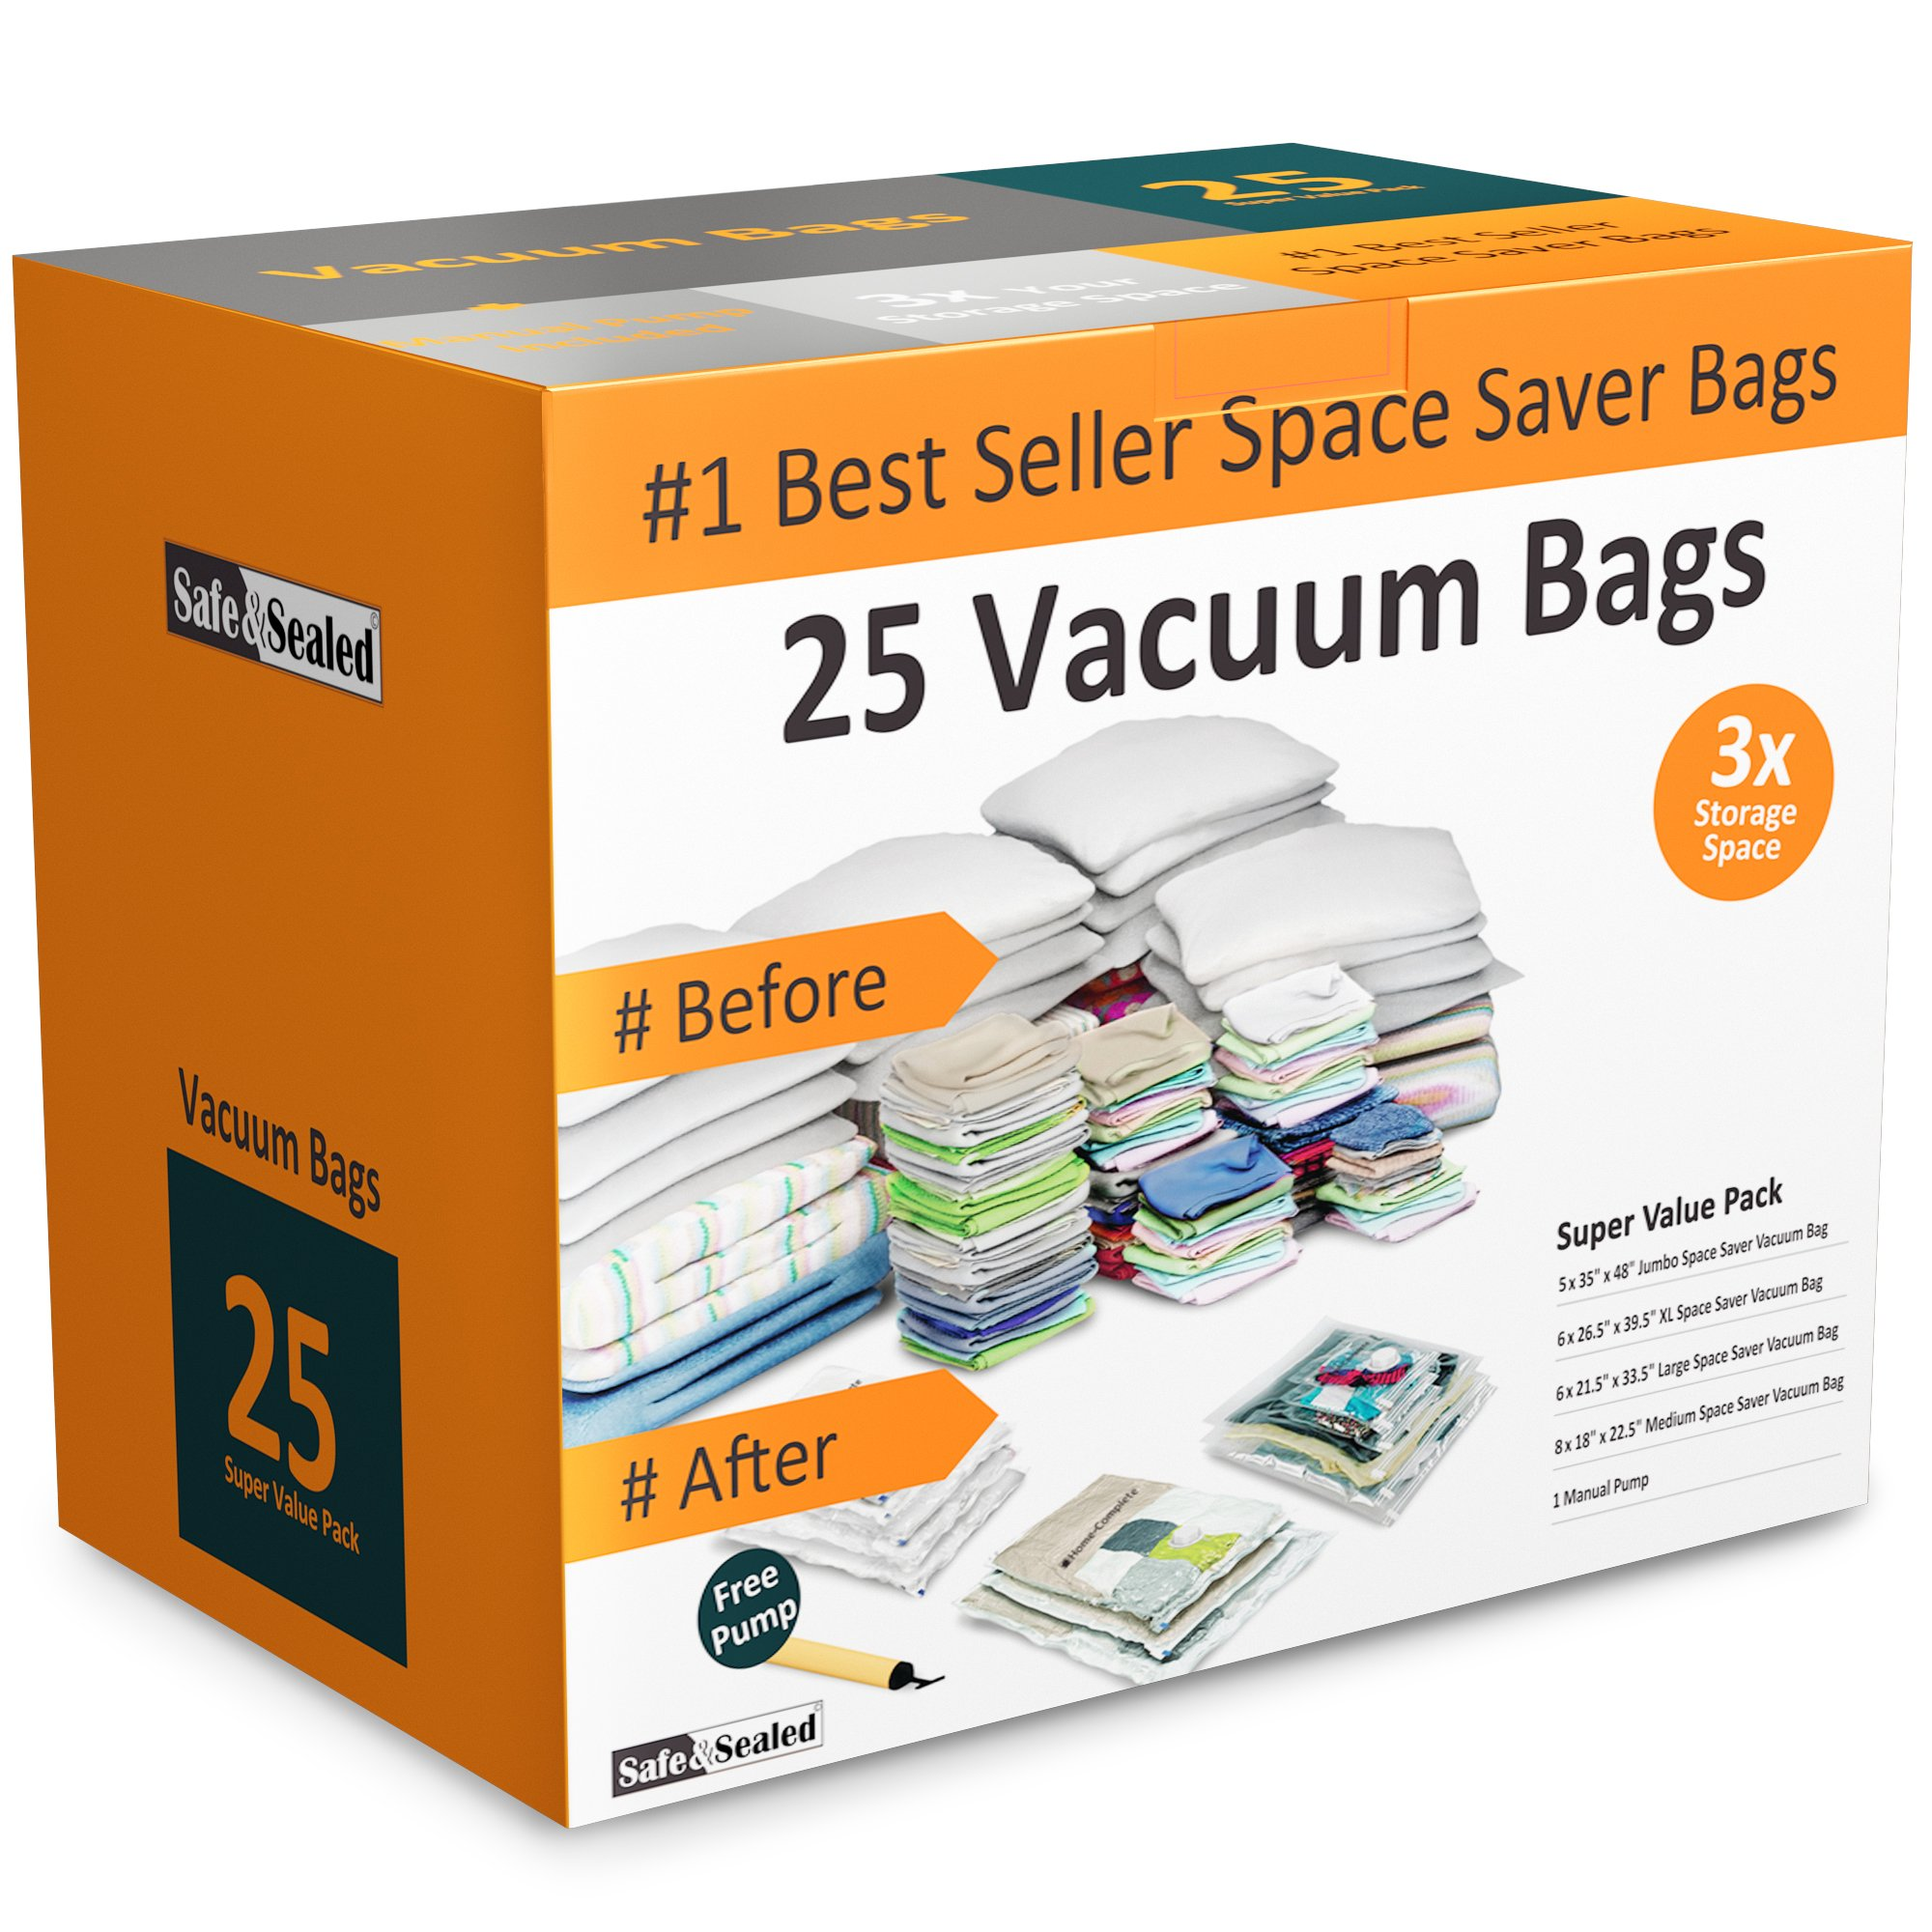 CDM product Home-Complete 25 Vacuum Storage Bags-Space Saving Air Tight Compression-Shrink Down Closet Clutter, Store, Organize Clothes, Linens, Seasonal Items big image